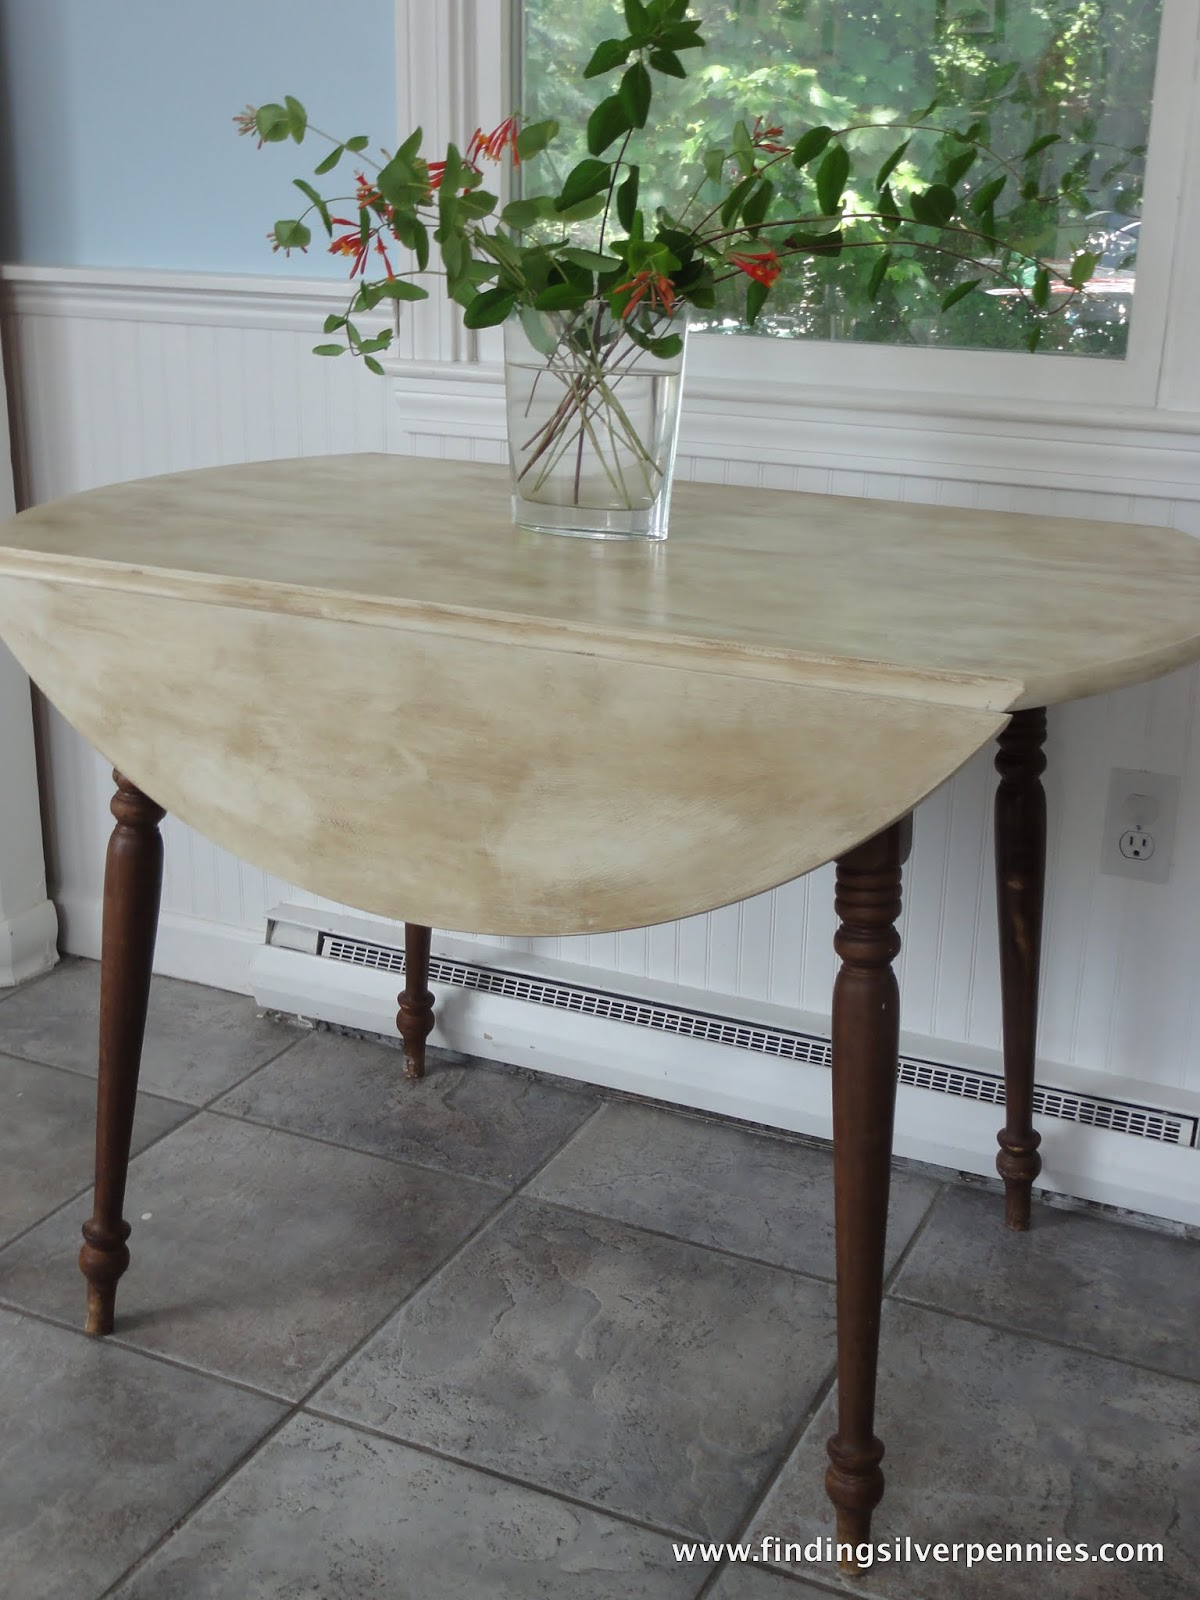 Lovely Old White Table With Rustic Finish